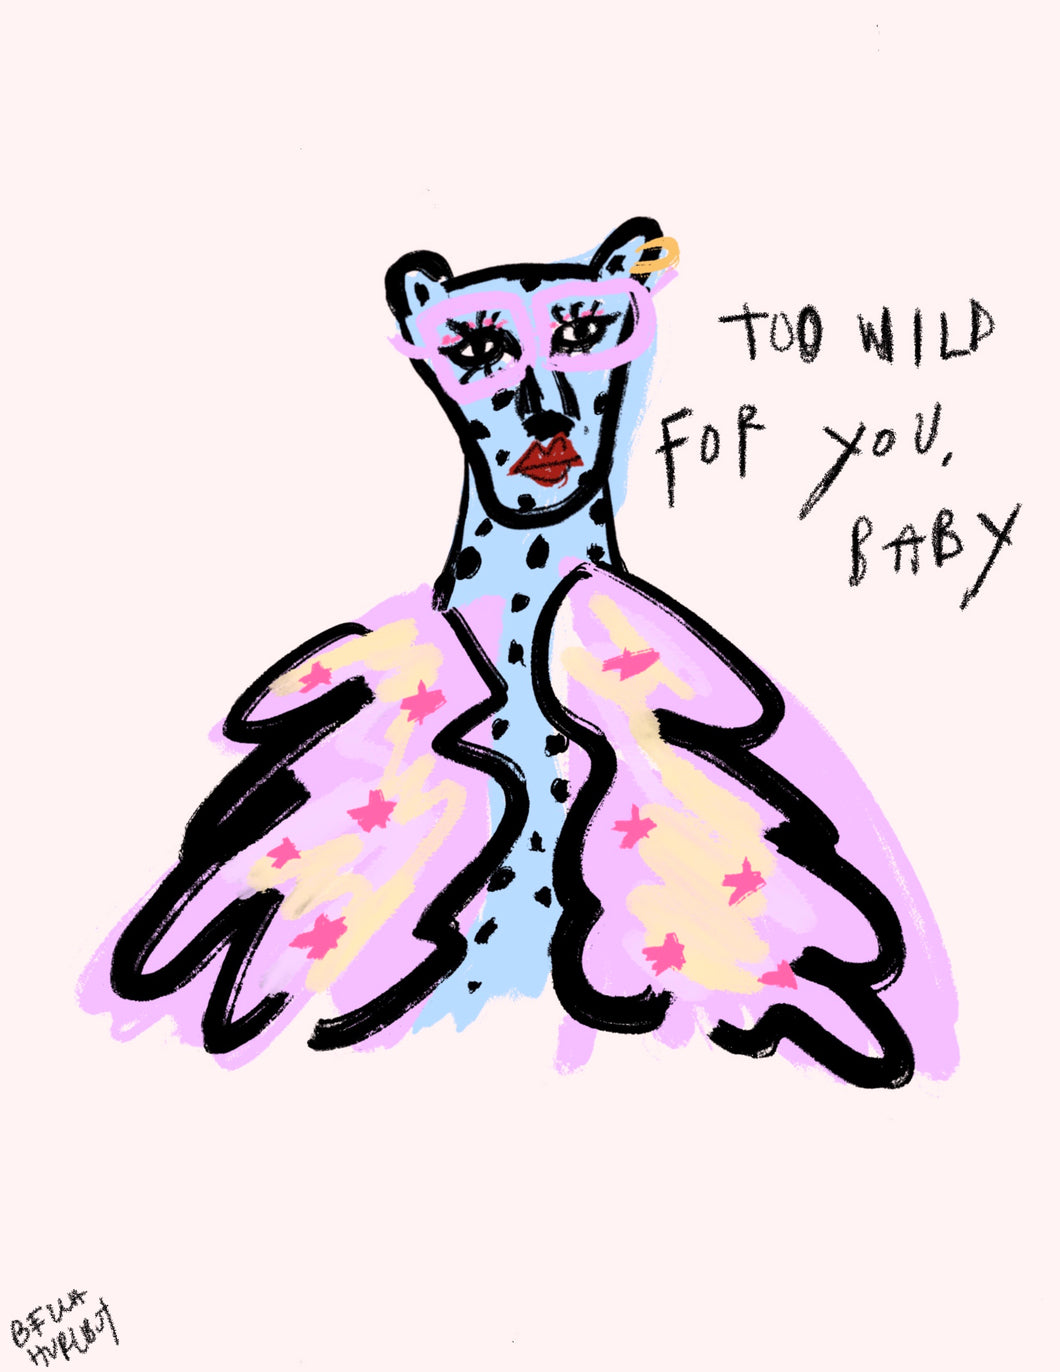 too wild for you, baby